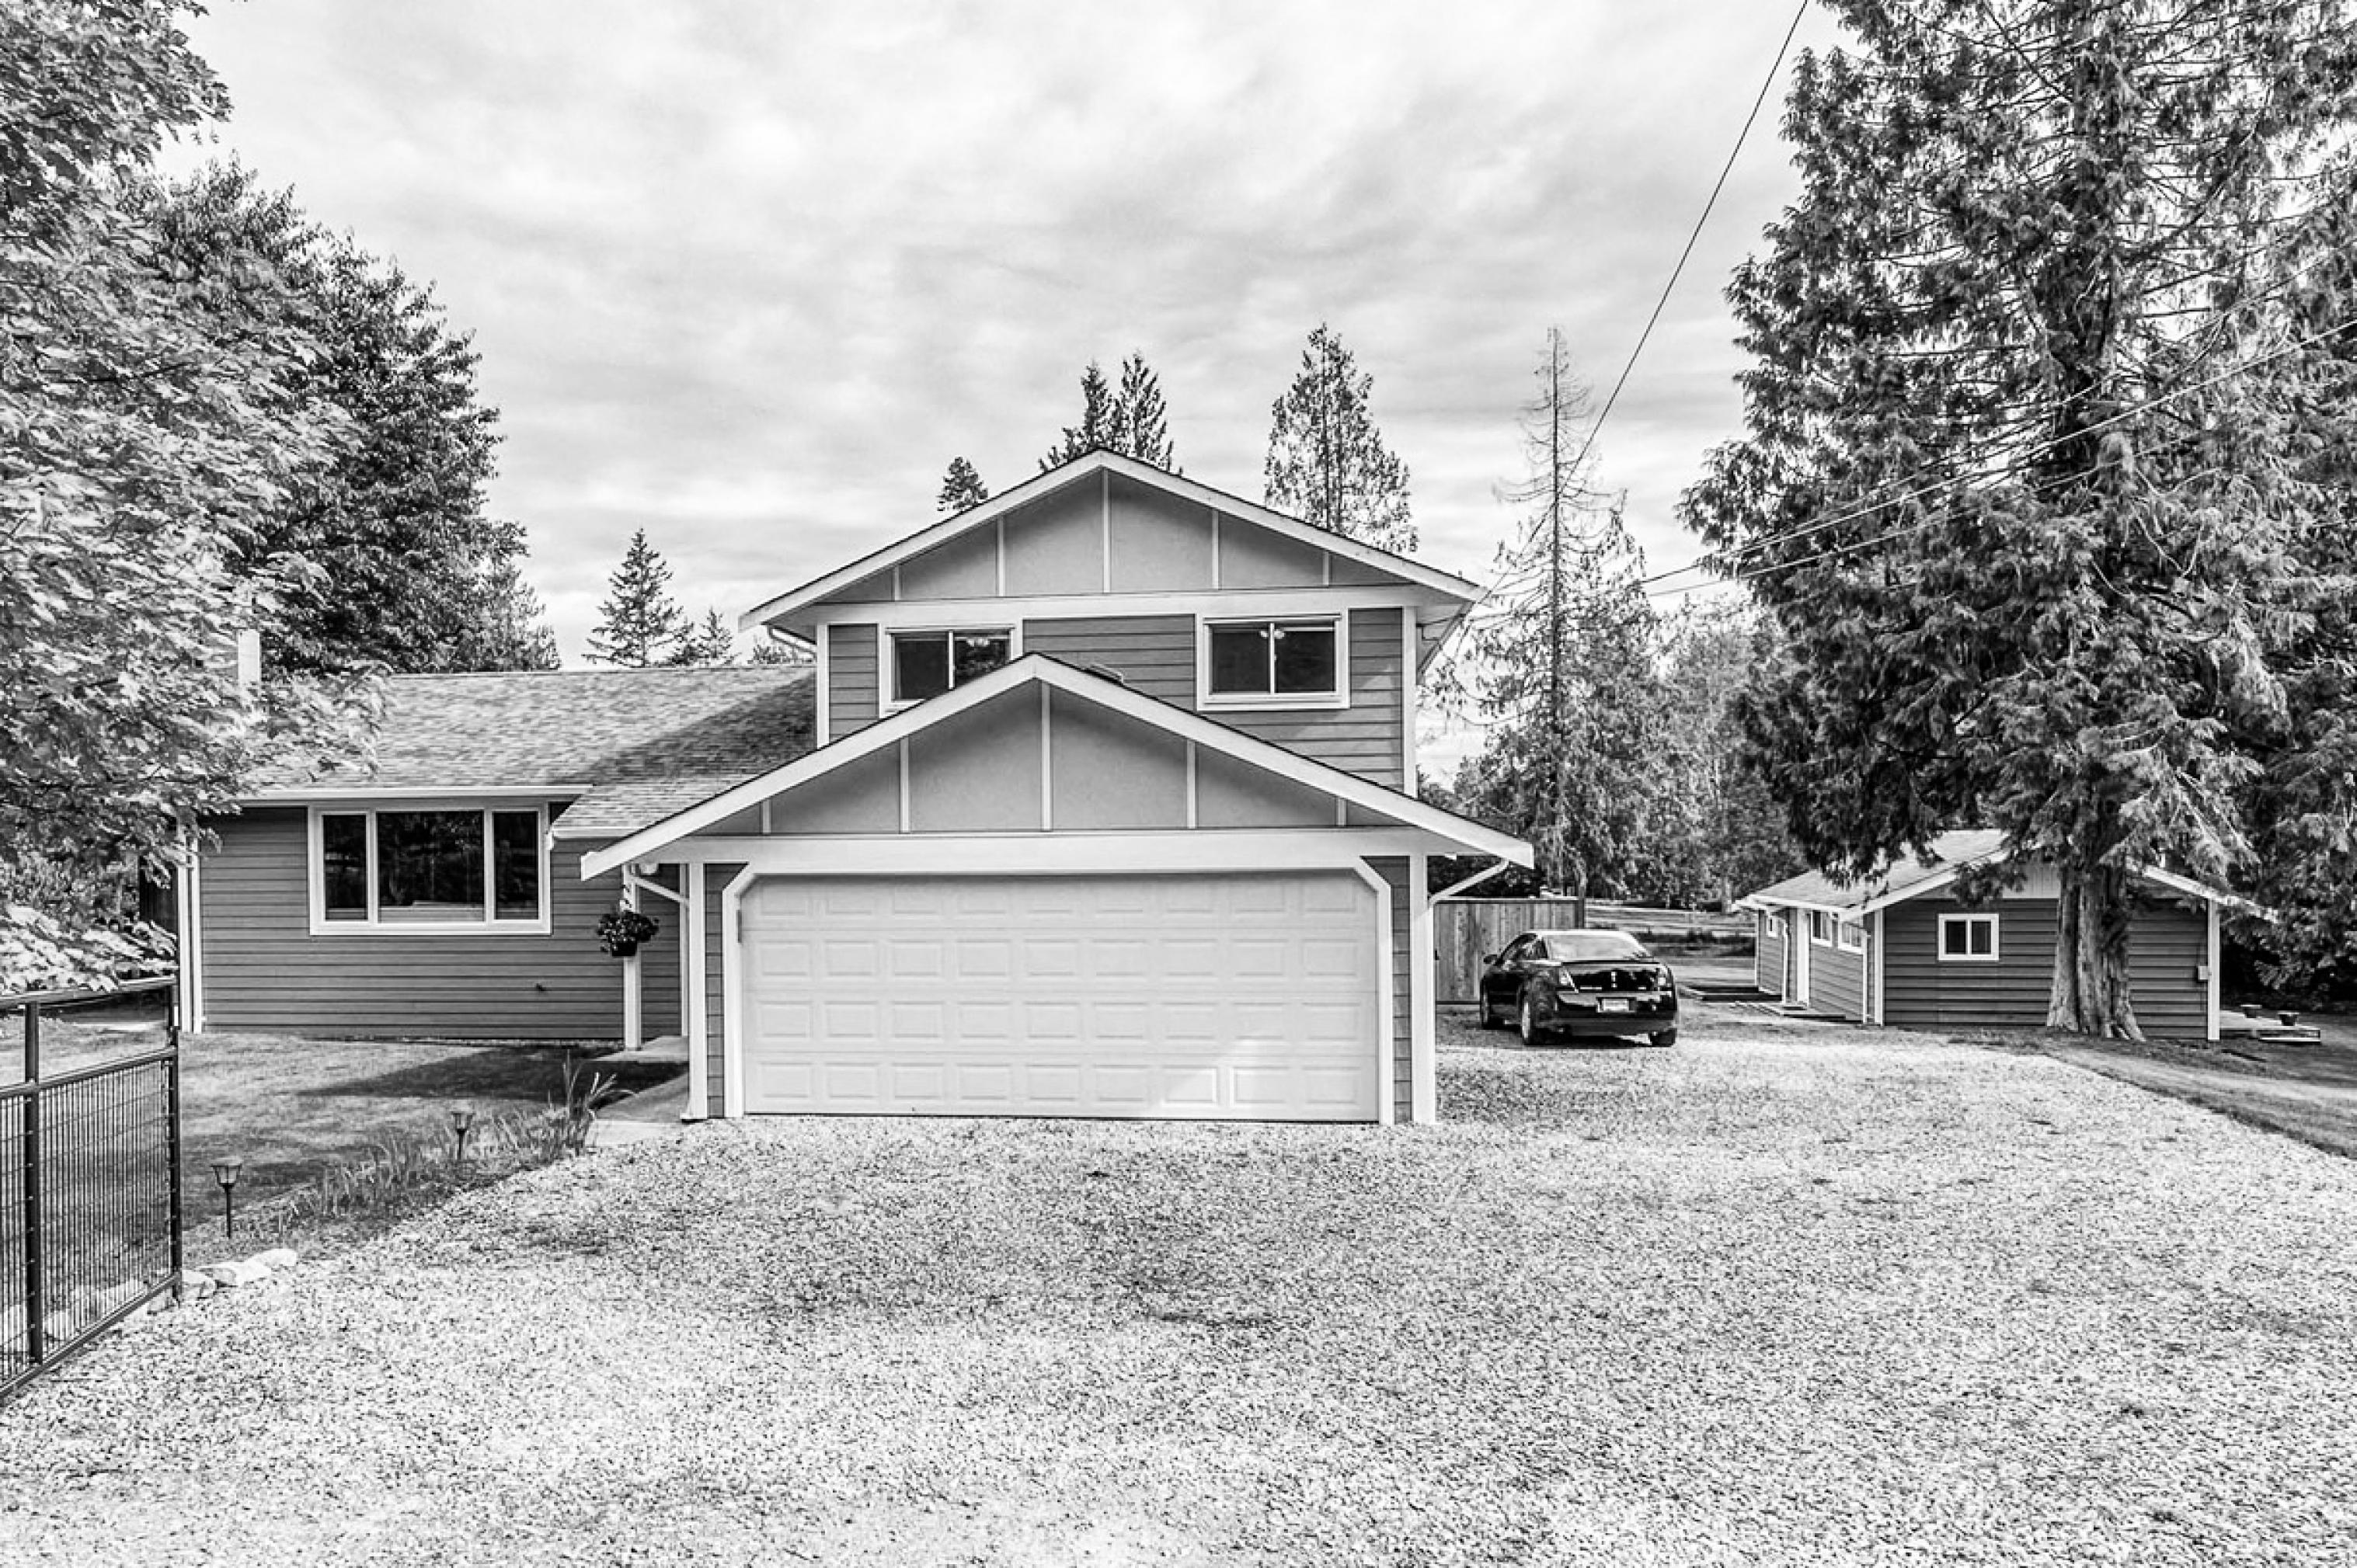 24133 61 Avenue, Salmon River, Langley 2